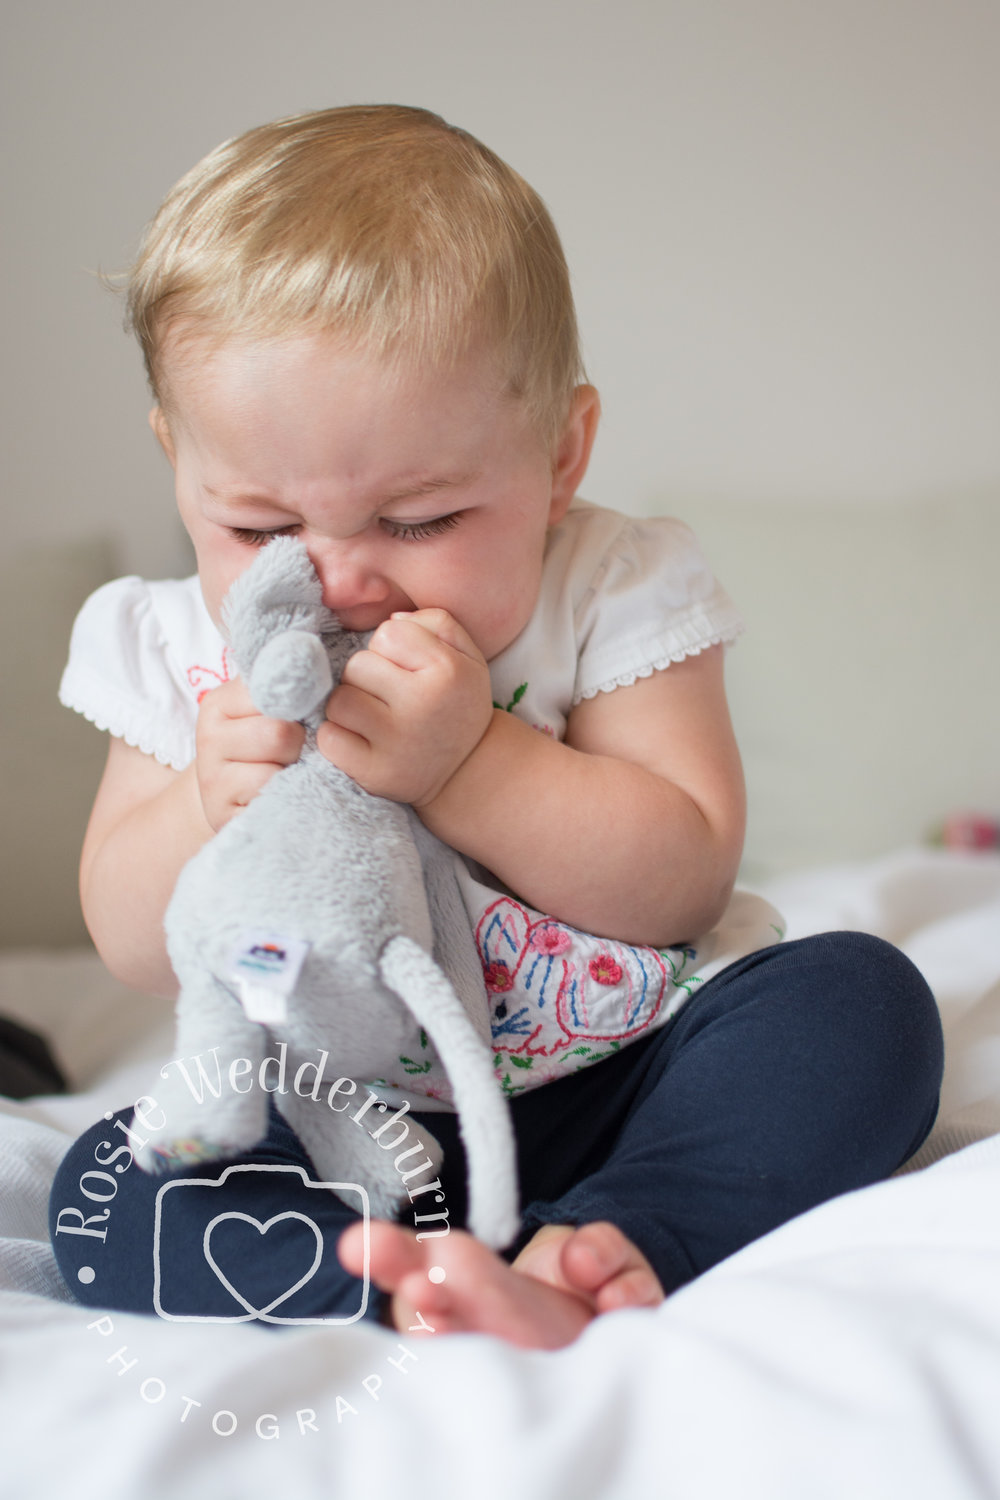 This teething baby can't get that soft toy into her mouth quickly enough!  Not a 'perfect' photo, but one that is a reminder of a particular time (plus, it's funny!).